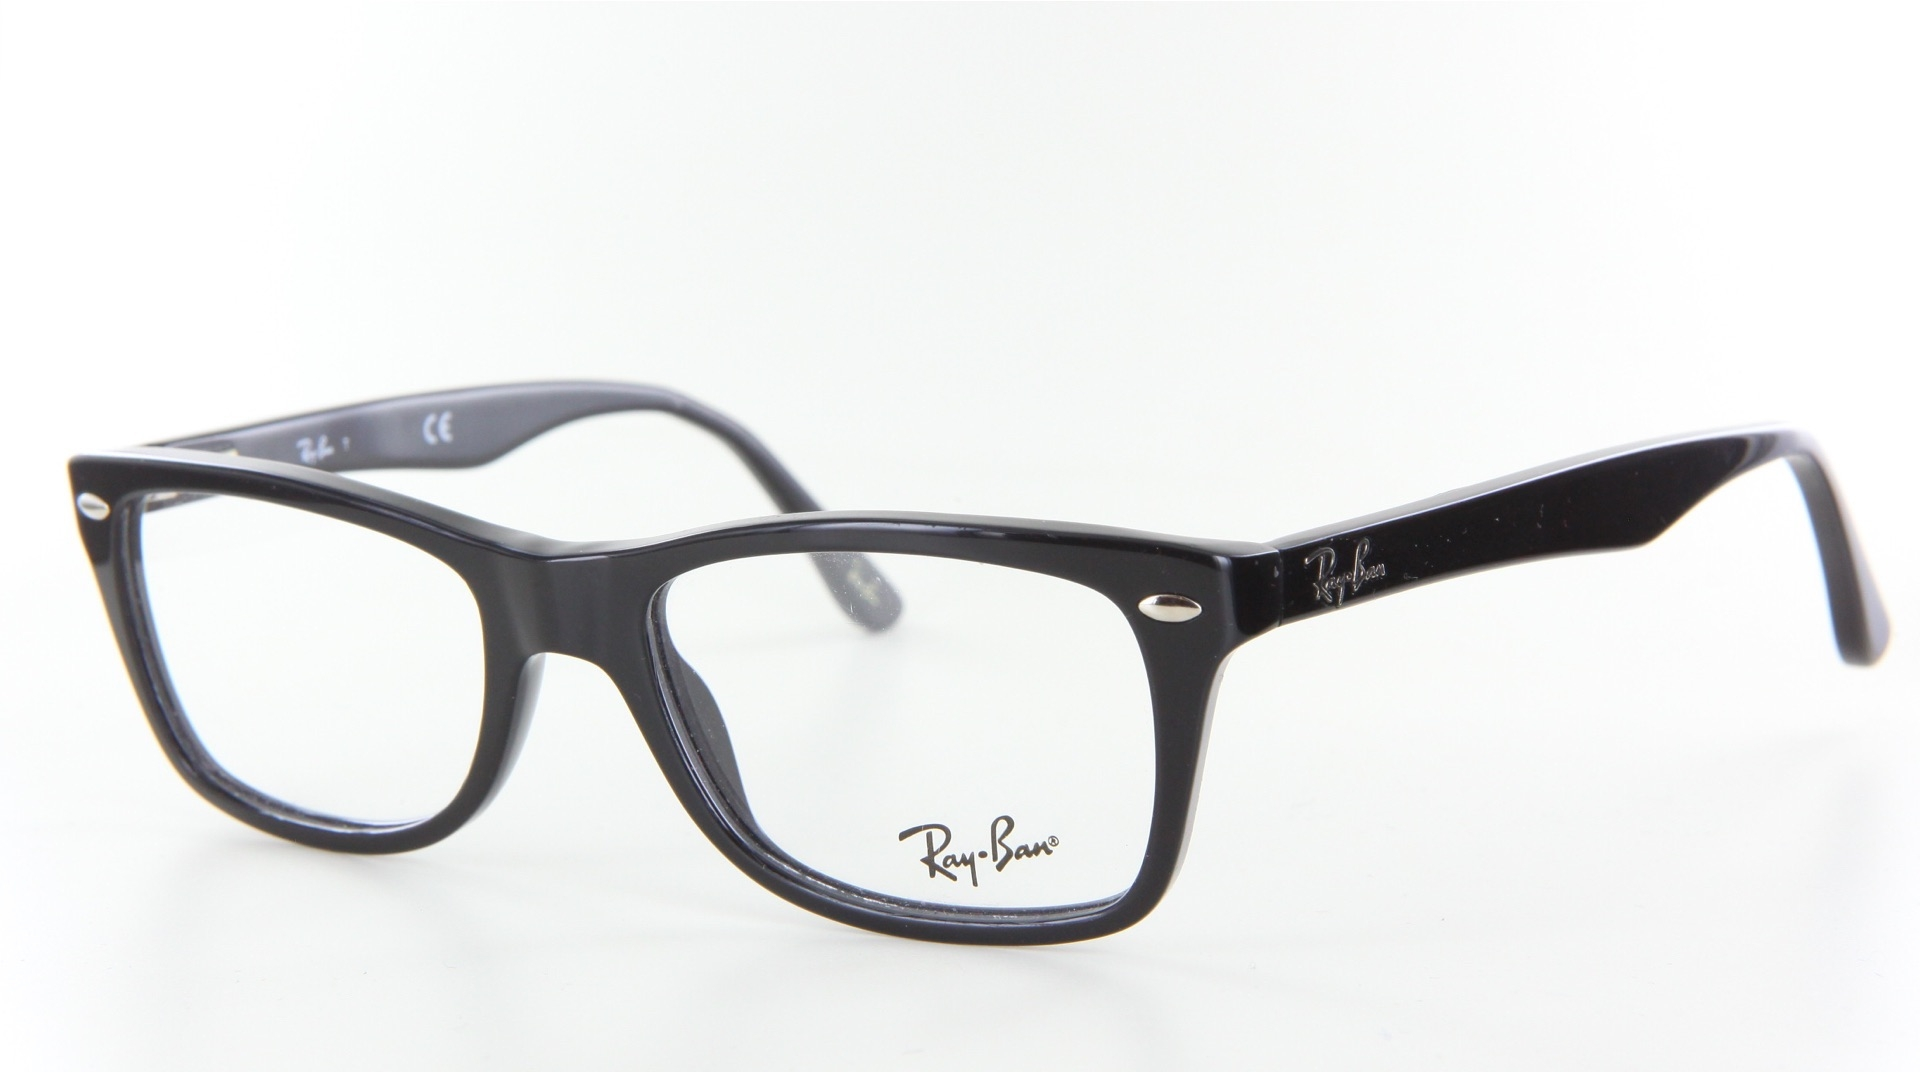 Ray-Ban - ref: 63048